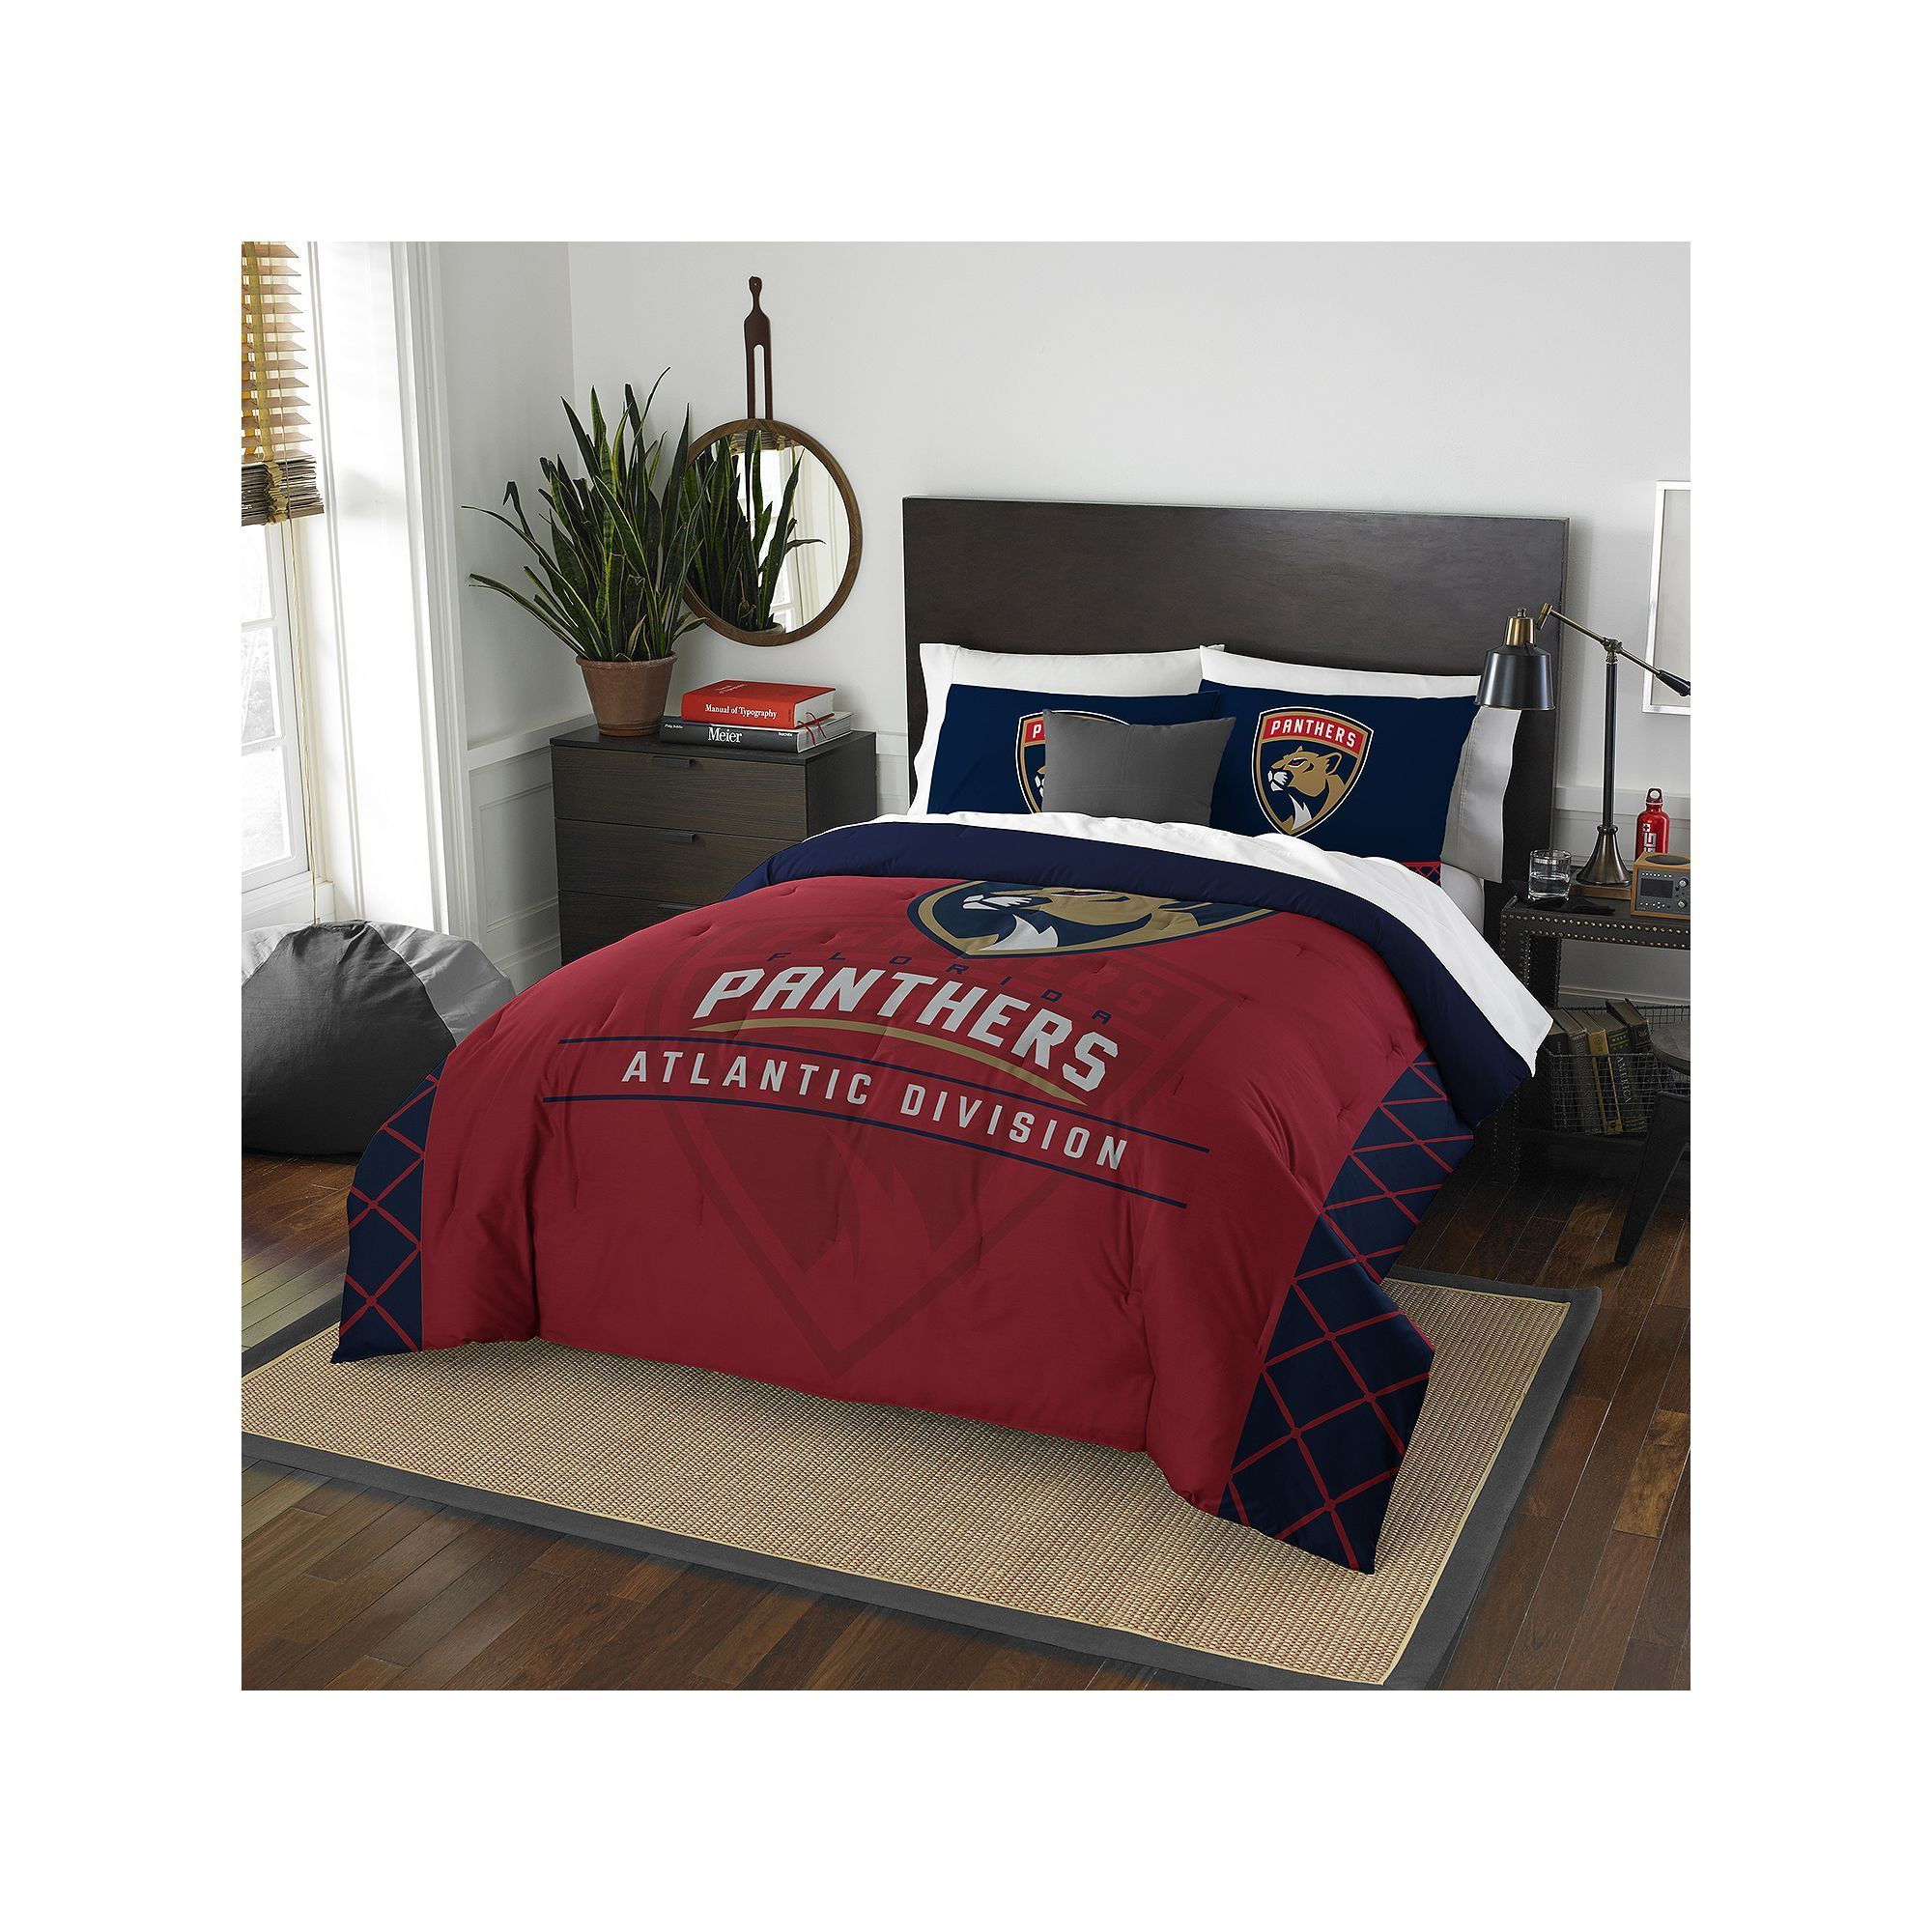 Officially Licensed NFL Draft Full//Queen Comforter and 2 Sham Set 86 x 86 Multi Color